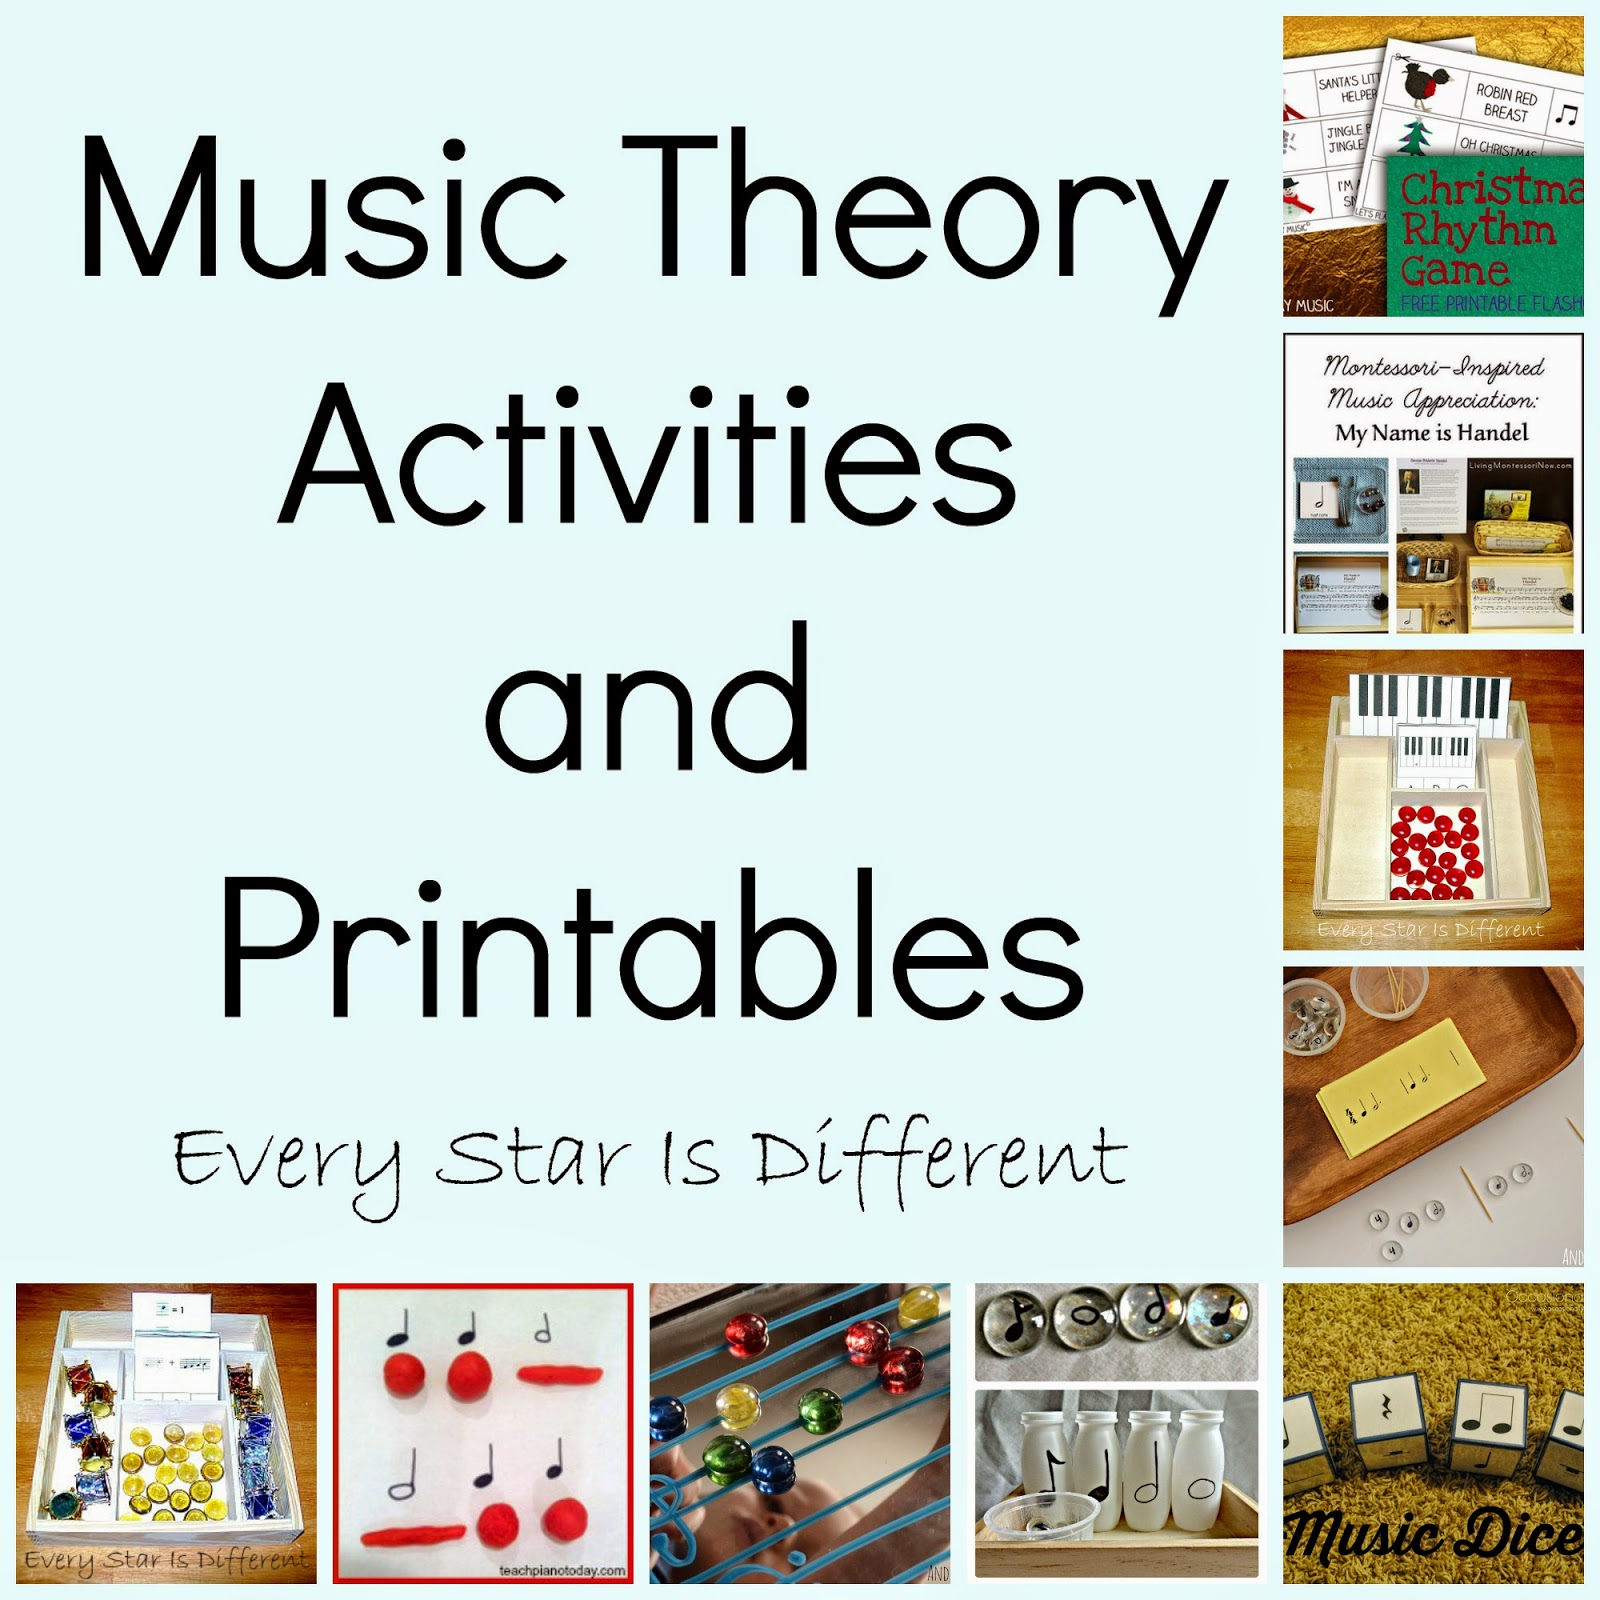 Music Theory Activiites and Printables